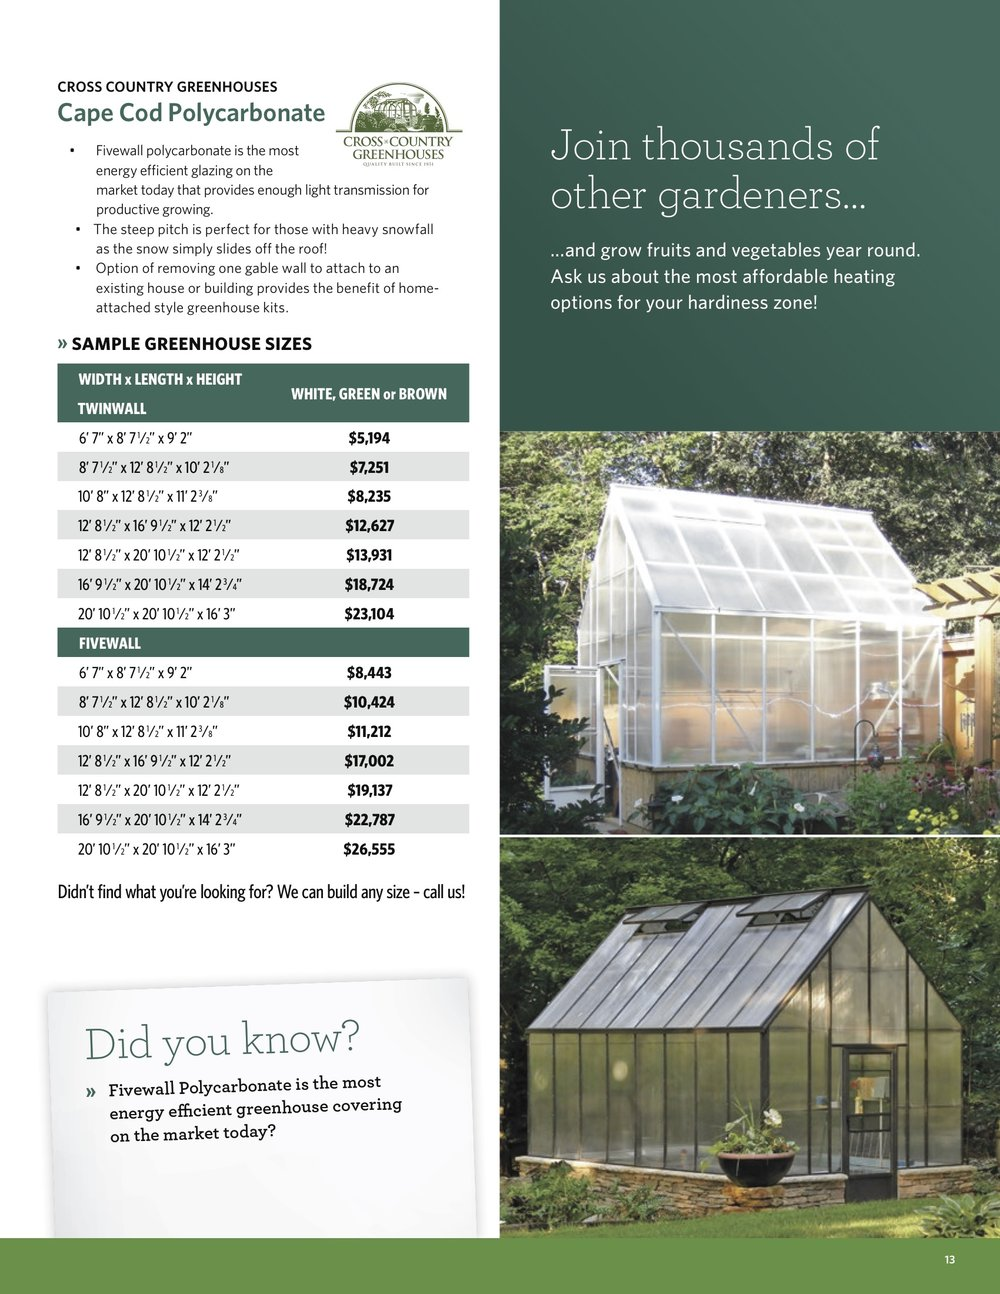 111552_Wisconsin Greenhouse Company_National Catalog (4) (dragged) 12.jpeg